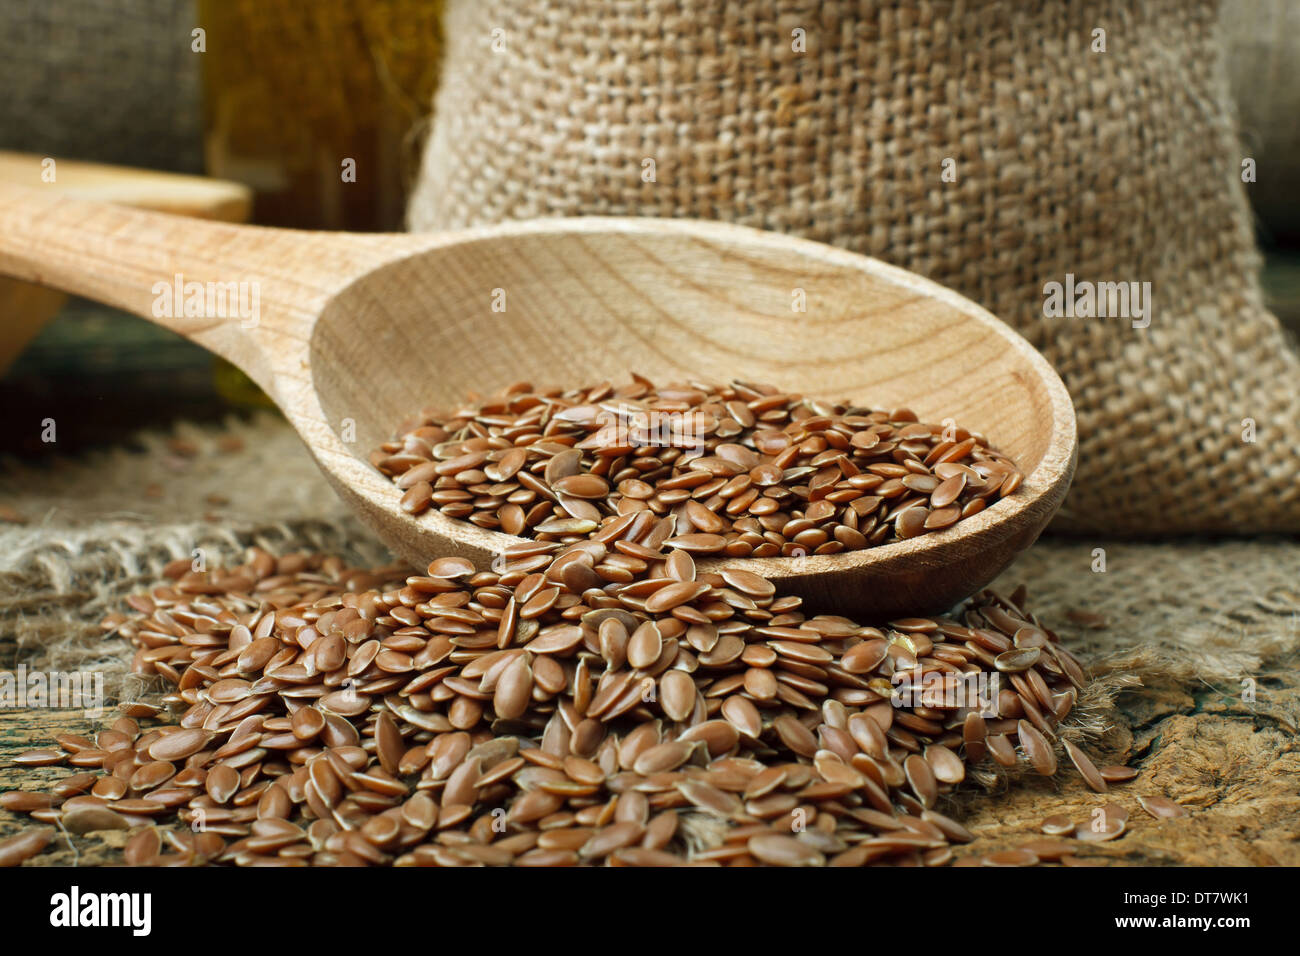 Flax seed (linseed) on wooden spoon - Stock Image